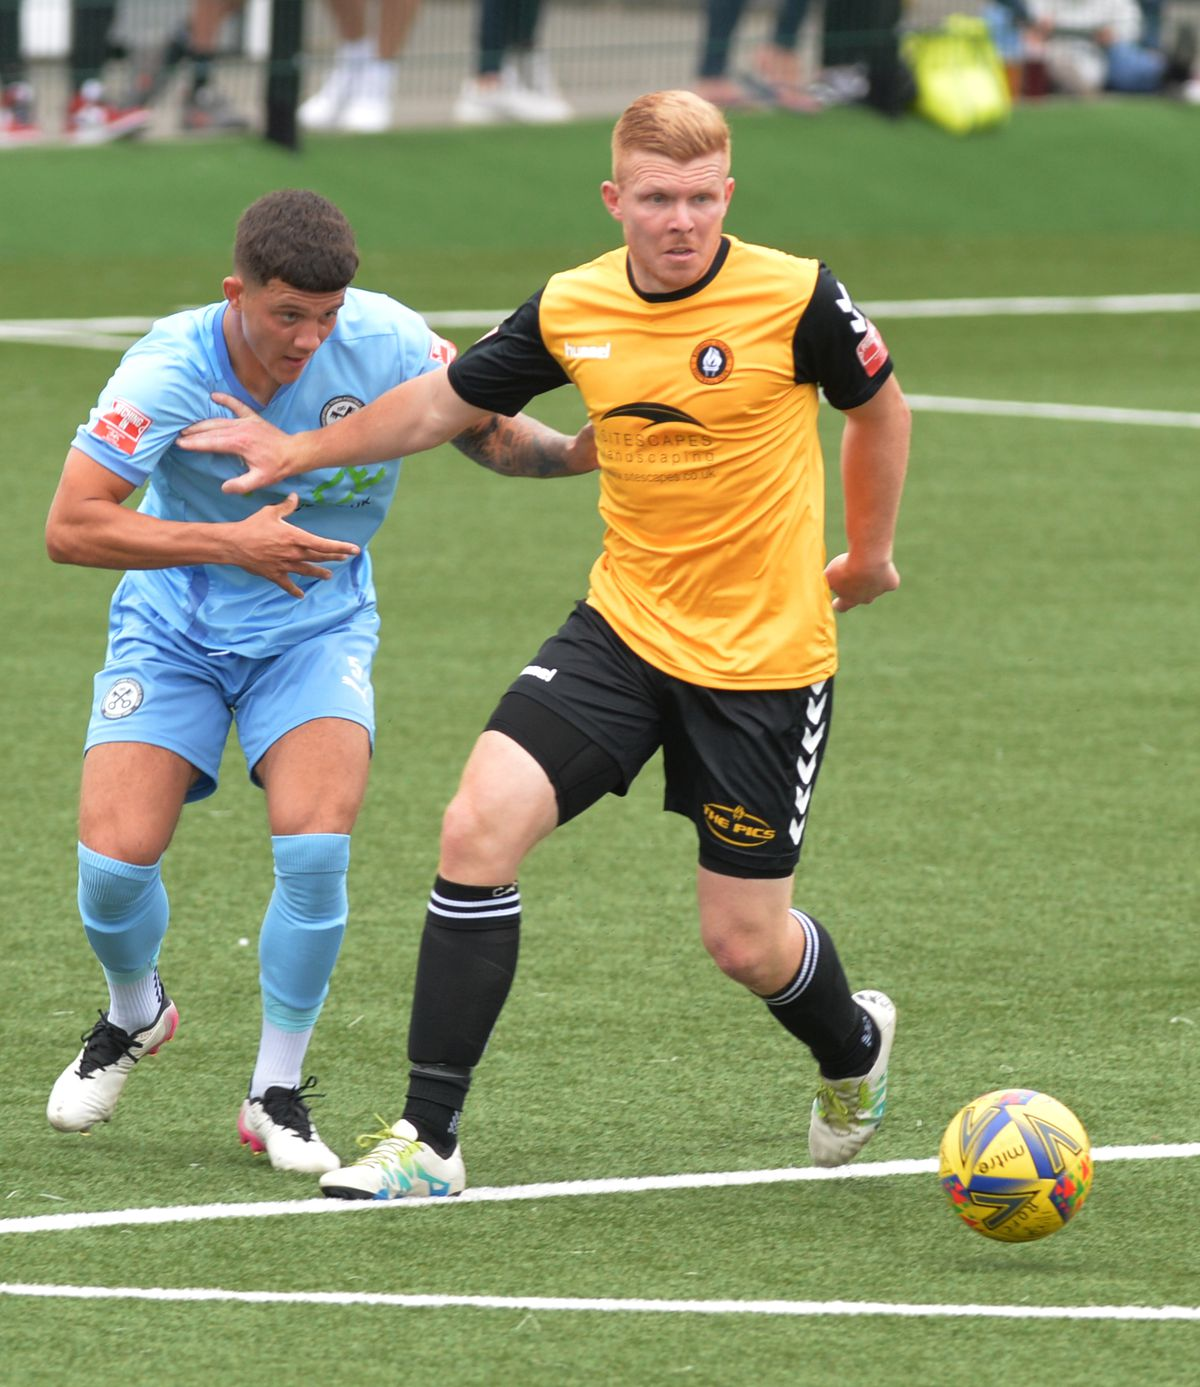 SPORTS PIC MNA PIC  DAVID HAMILTON PIC  EXPRESS AND STAR 30/8/21 RUSHALL OLYMPIC VS HEDNESFORD TOWN Lewis Ludford-Ison and Daniel Glover.